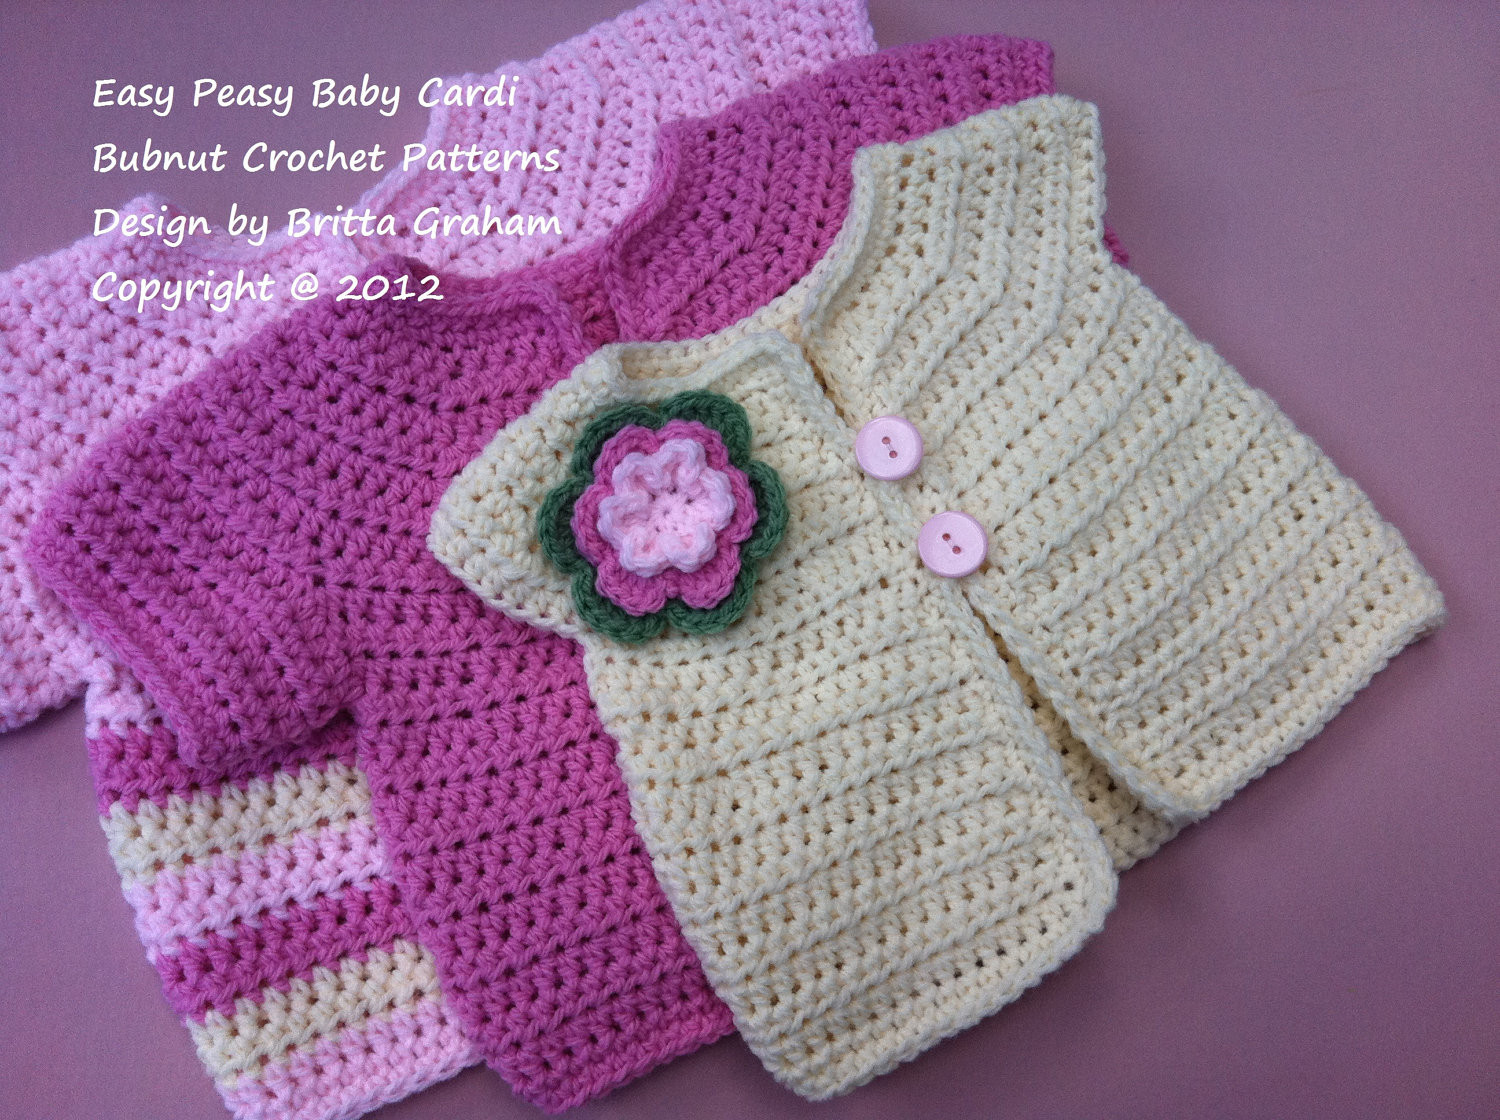 Awesome Beginner Crochet Baby Sweater Pattern Crochet and Knit Easy Crochet Cardigan Pattern Free Of Adorable 41 Pictures Easy Crochet Cardigan Pattern Free